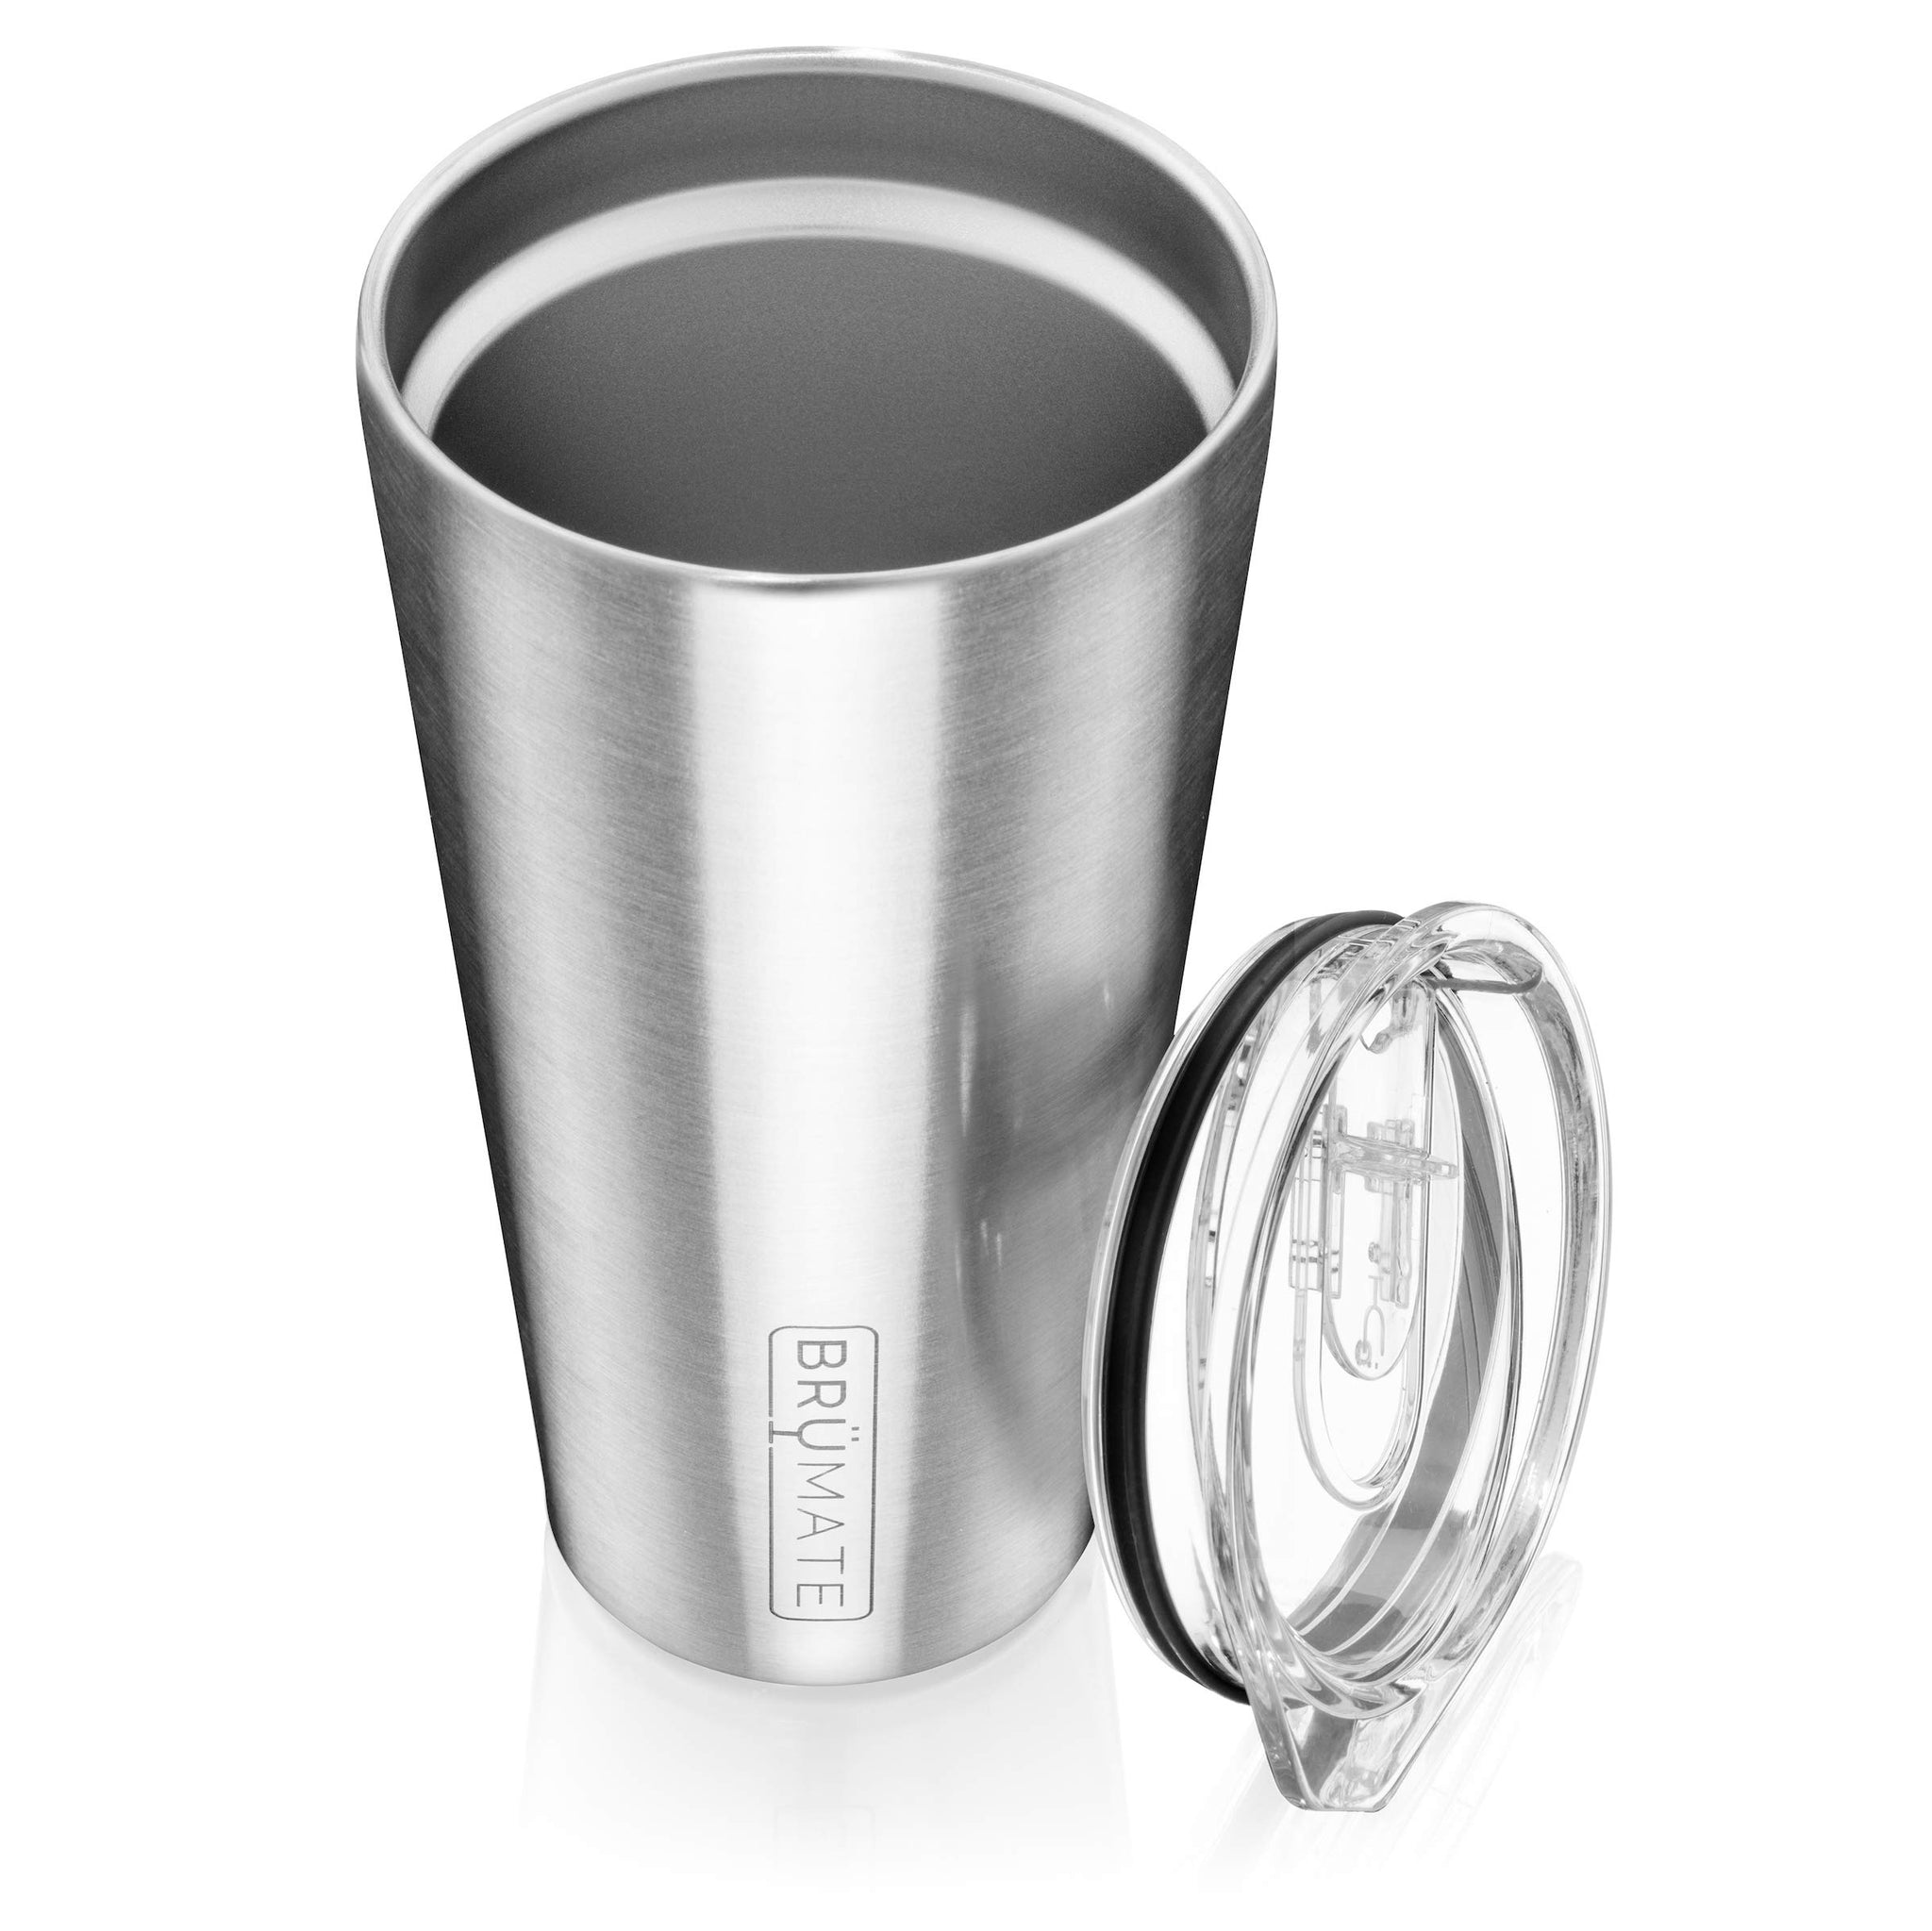 Brümate Imperial Pint 20oz Shatterproof Double Wall Vacuum Insulated Stainless Steel Travel & Camping Mug for Beer, Cocktails, Coffee & Tea with Splash-Proof Lid for Men & Women (Merlot)